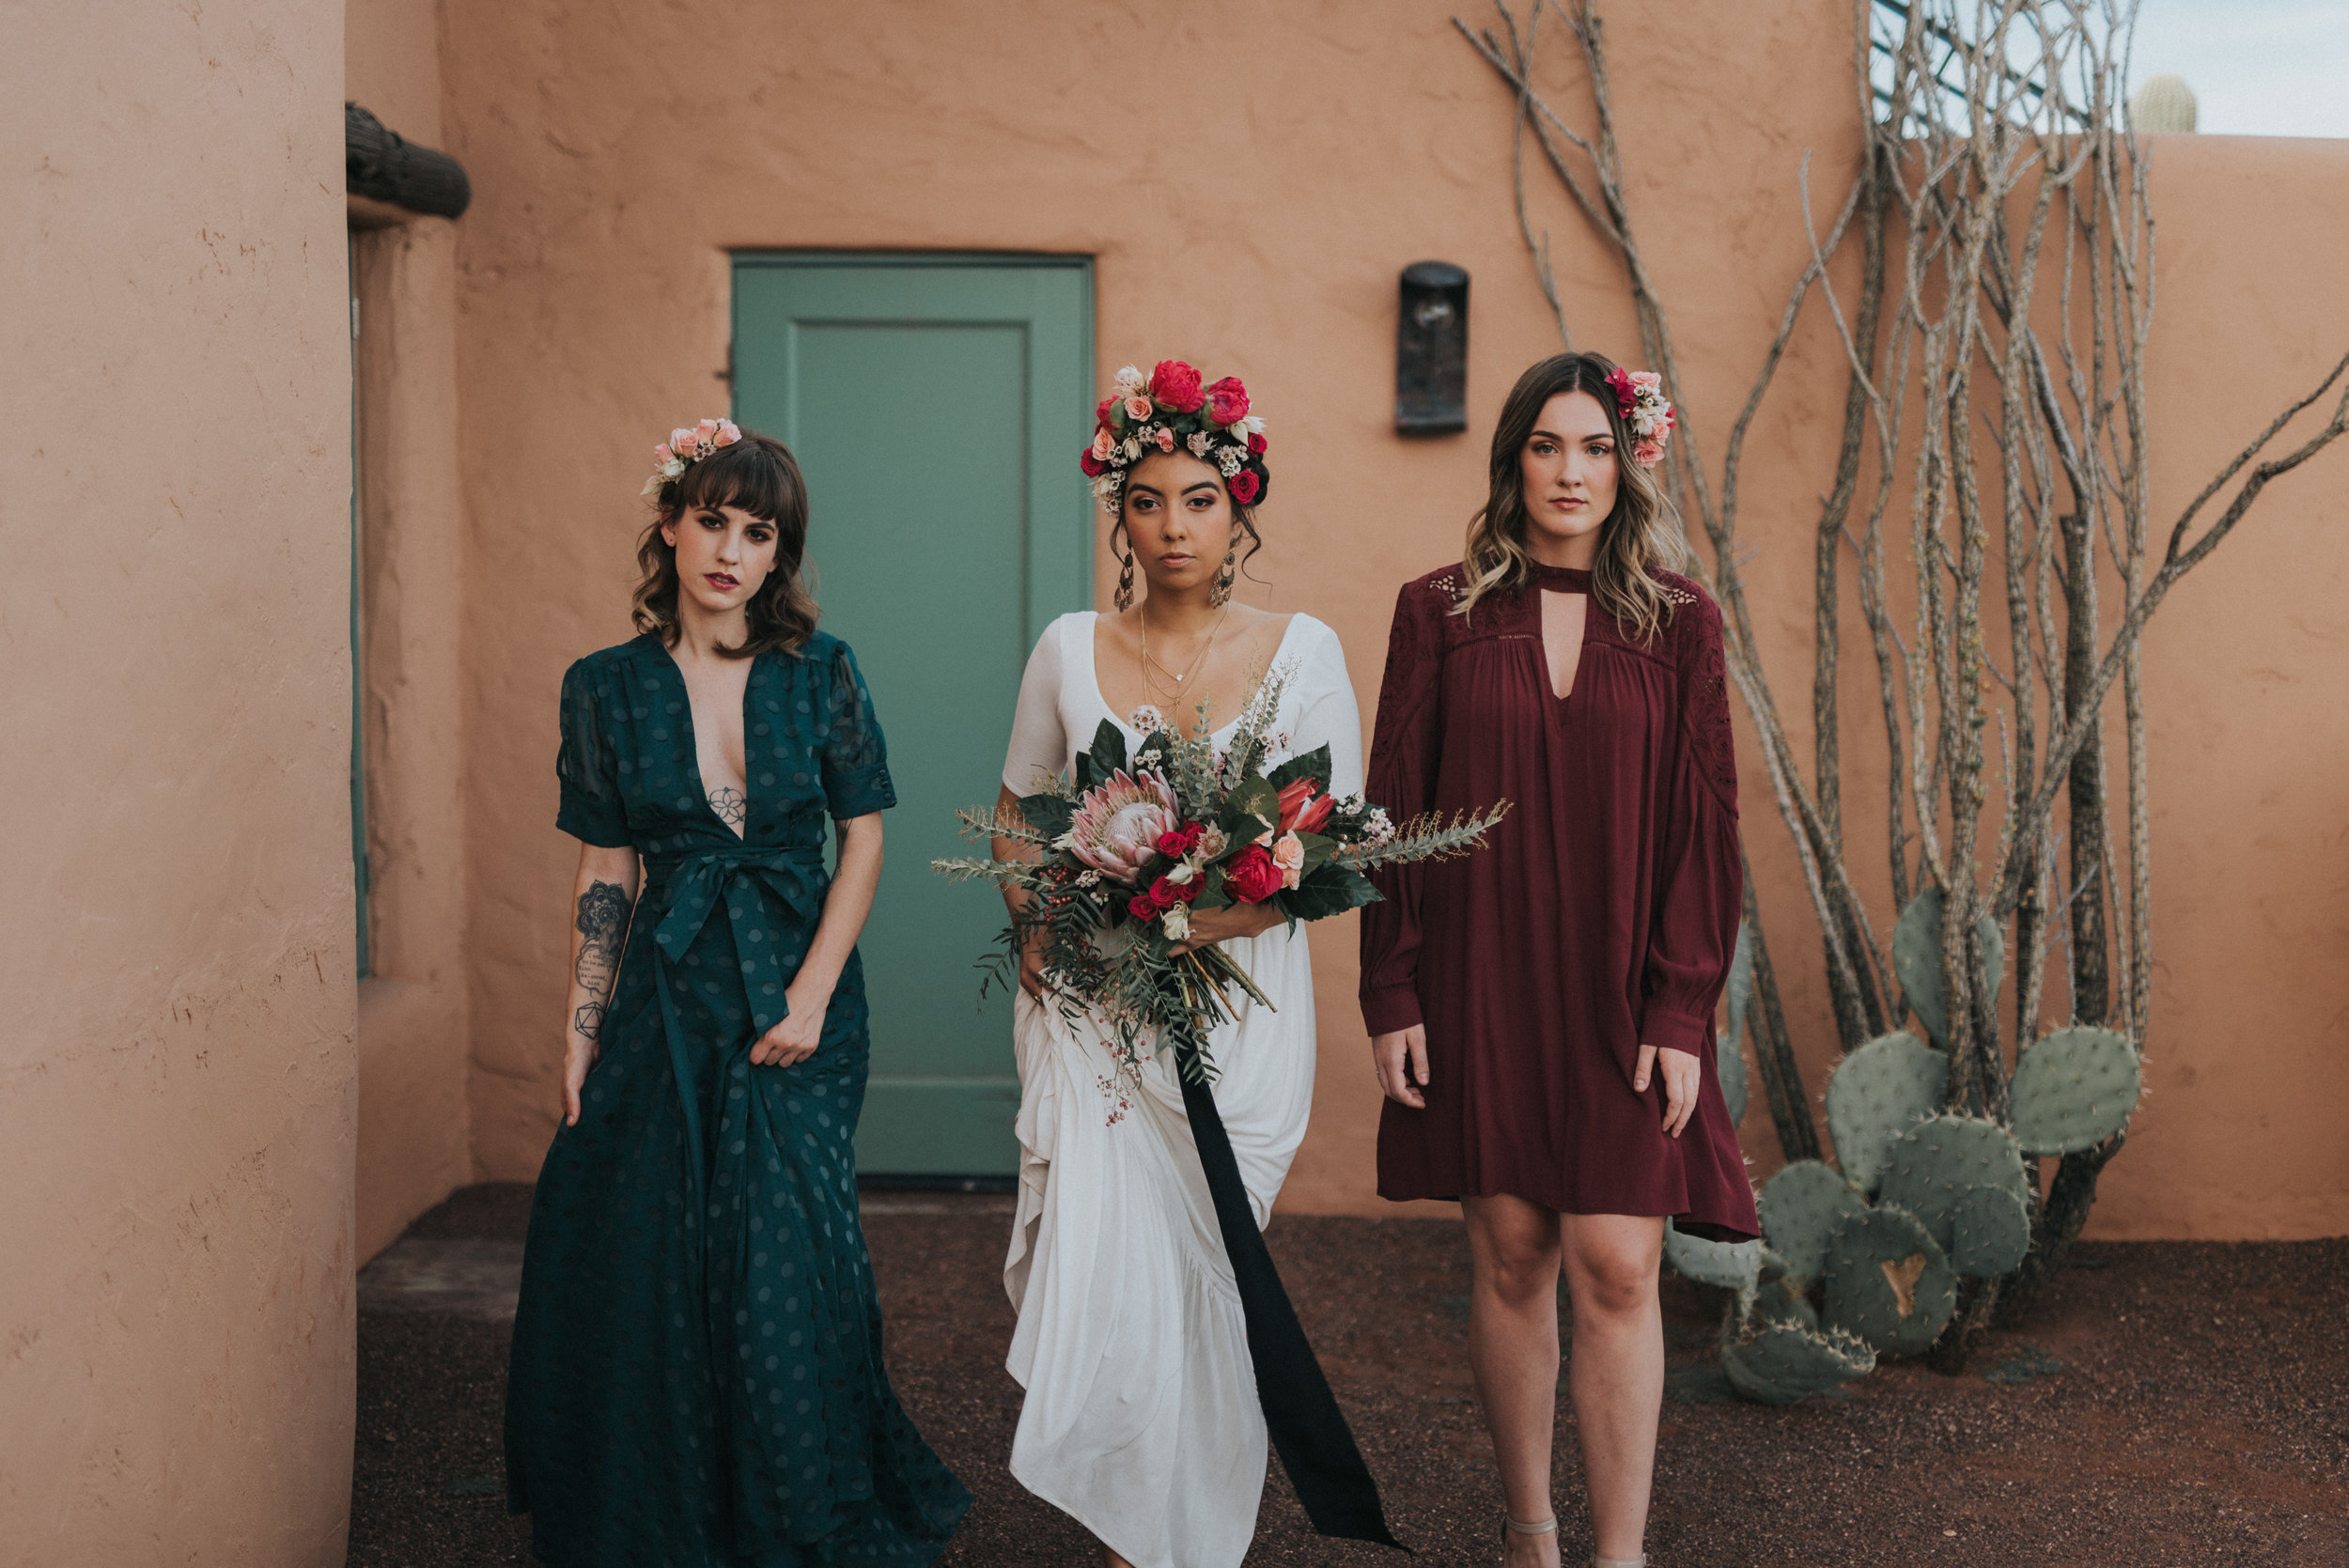 Frida Kahlo Inspired Wedding - Bride with flower crown and bridesmaids in mismatched dresses